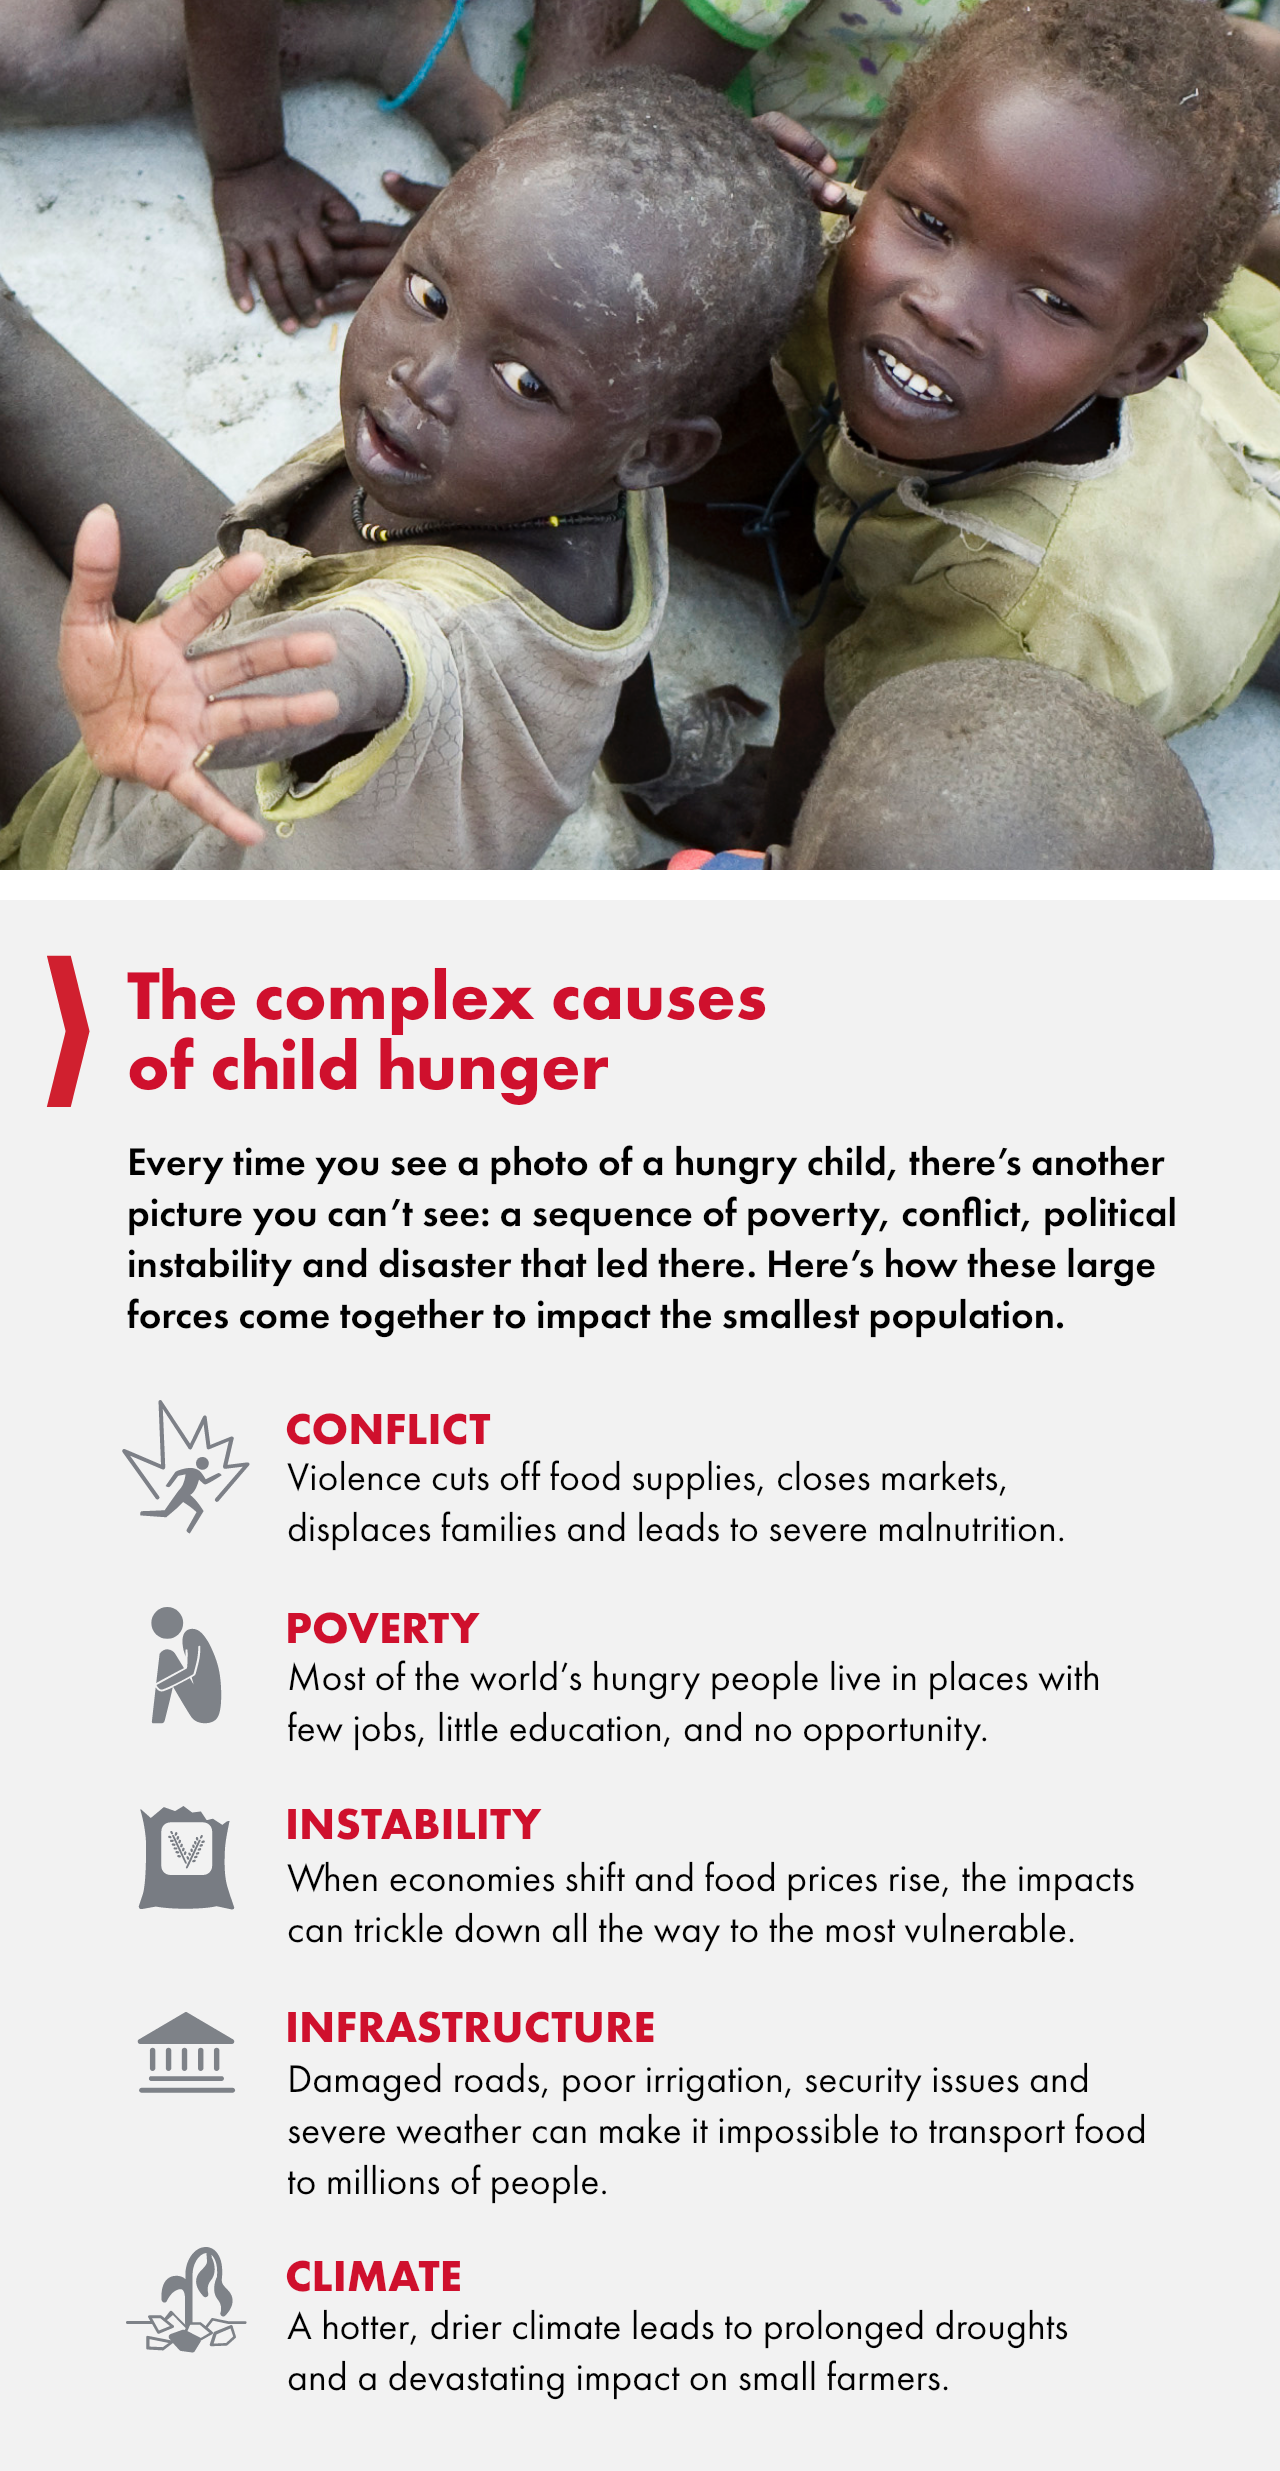 The complex causes of child hunger: conflict, poverty, instability, infrastructure, climate